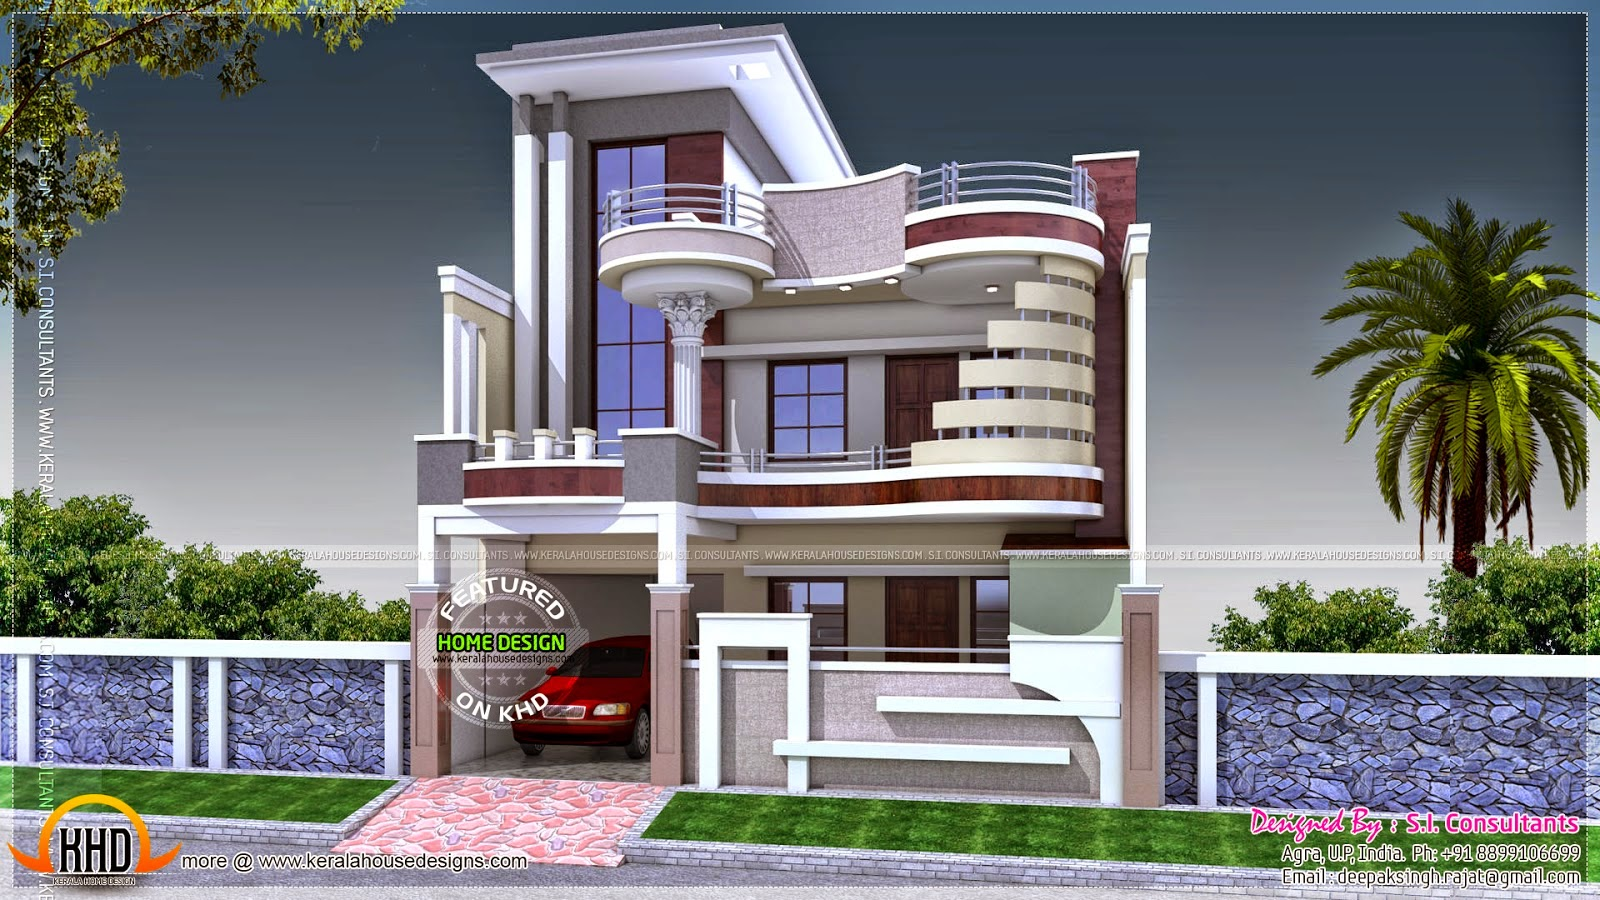 Tropicalizer indian house design for Best home designs 2015